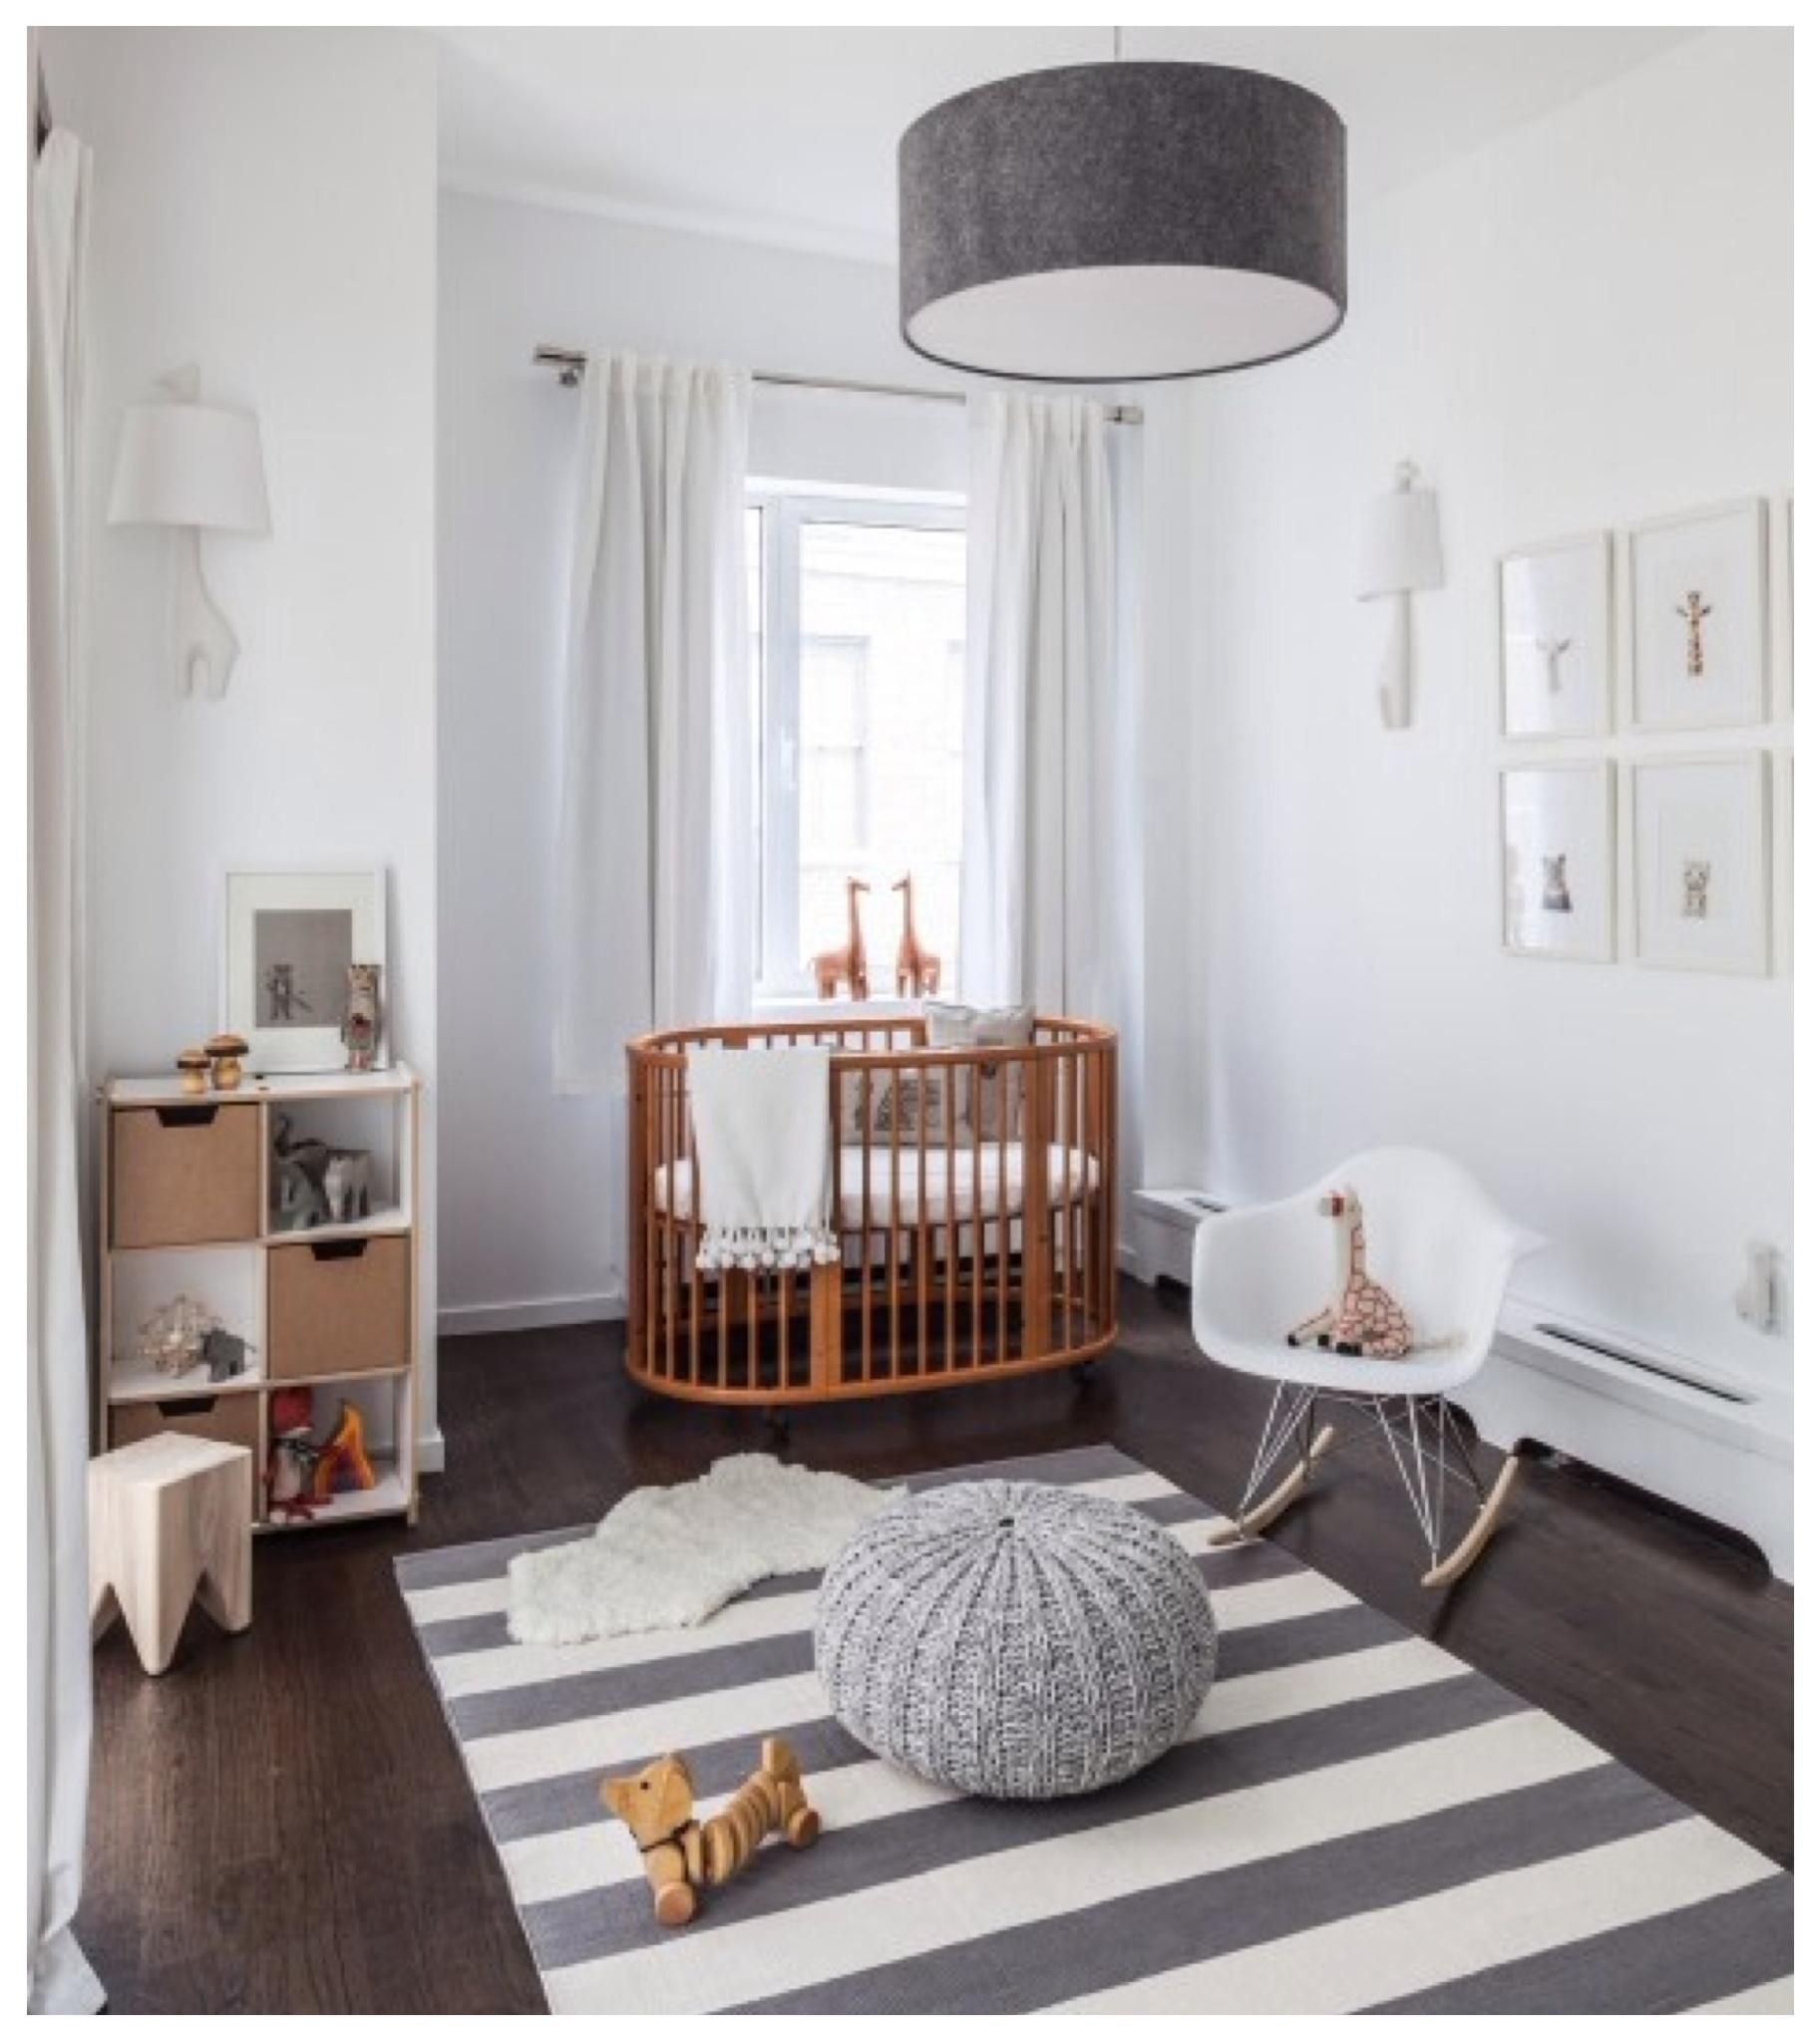 Adorable Baby Nursery Room Designing With Striped Pattern Rug On Dark Wood Flooring And Black